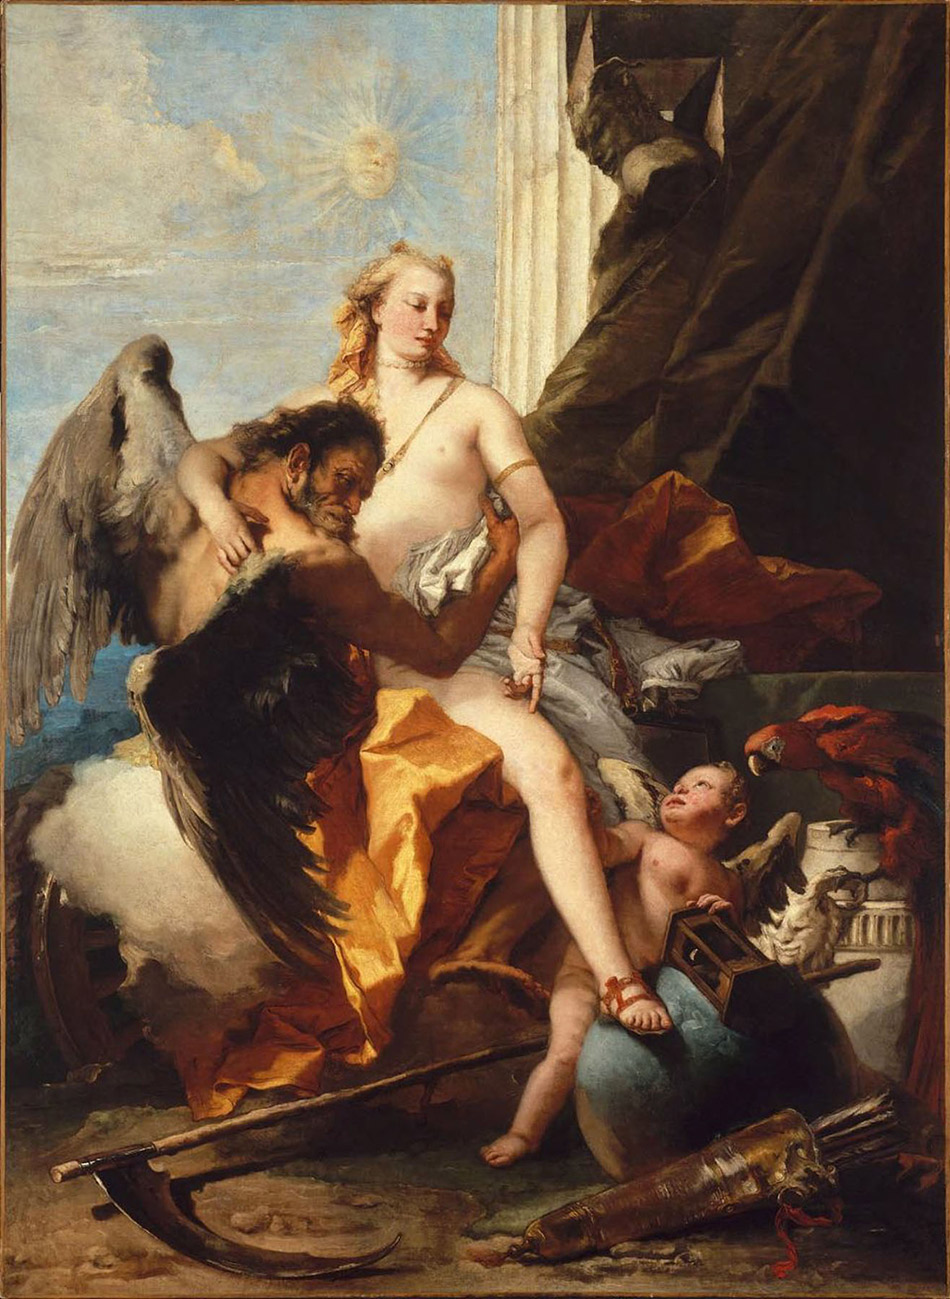 tiepolo_time-unveiling-truth_w